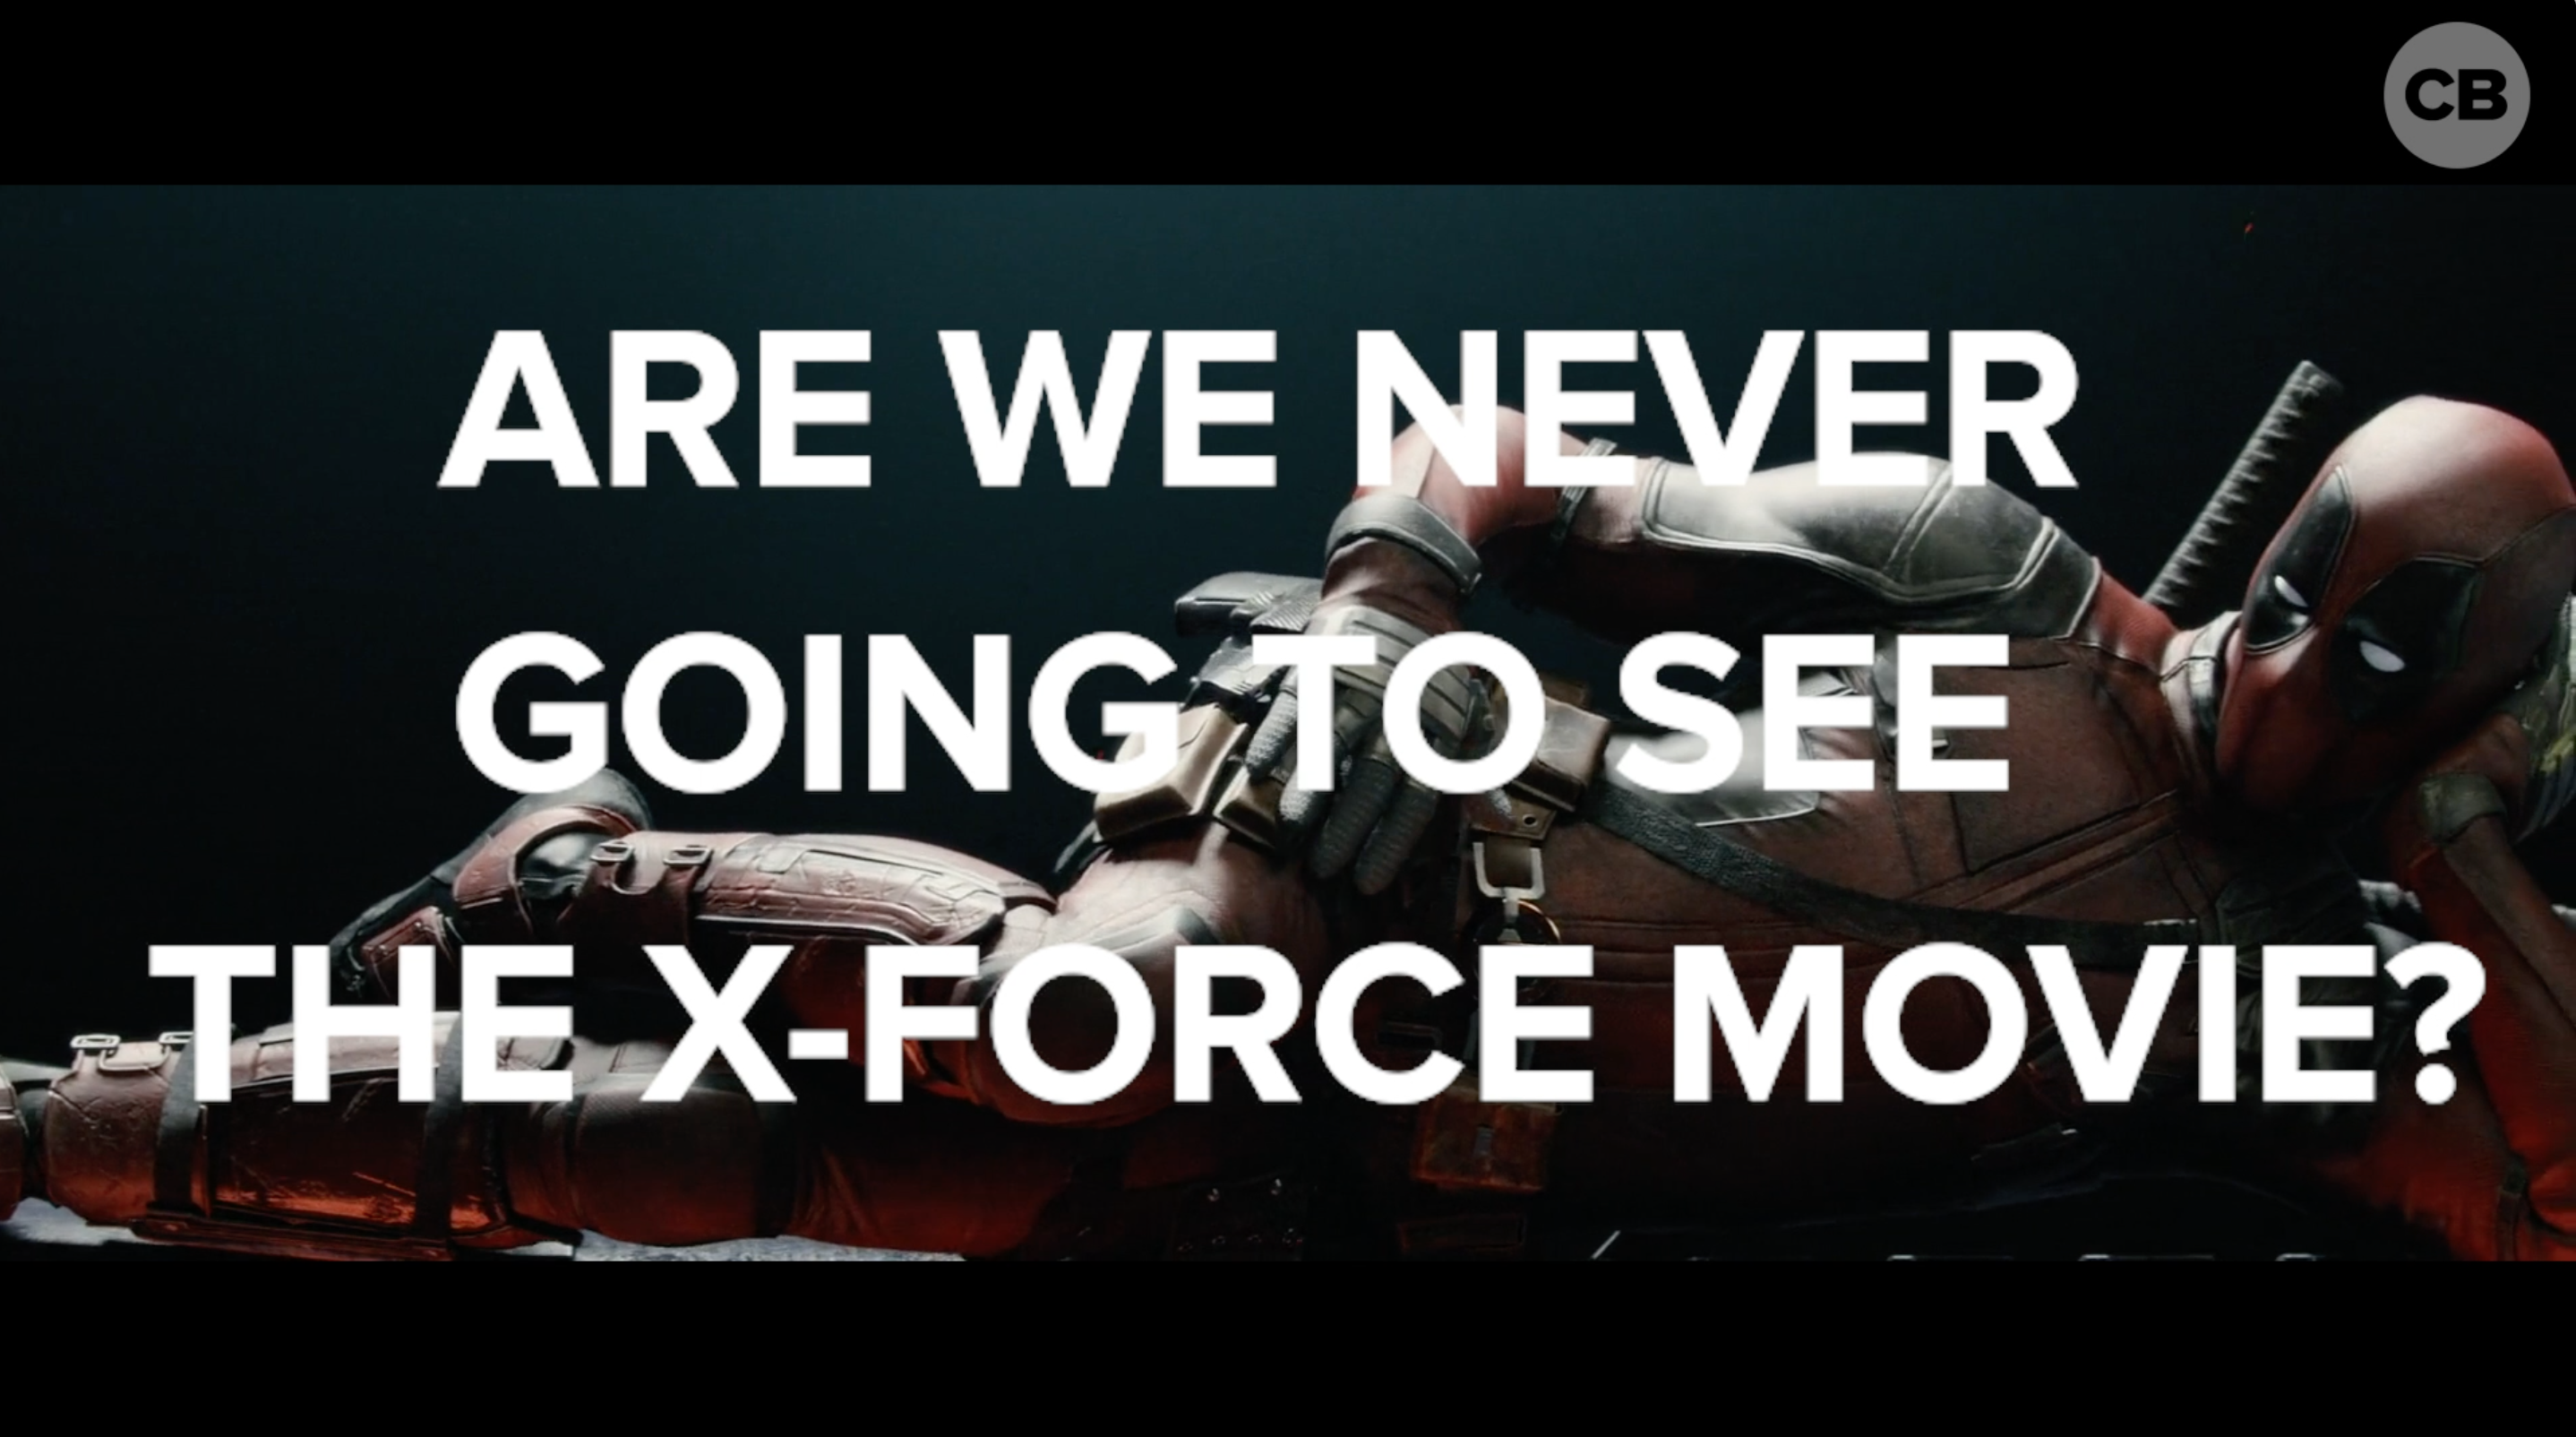 Are We Never Going to See the X-Force Movie? screen capture